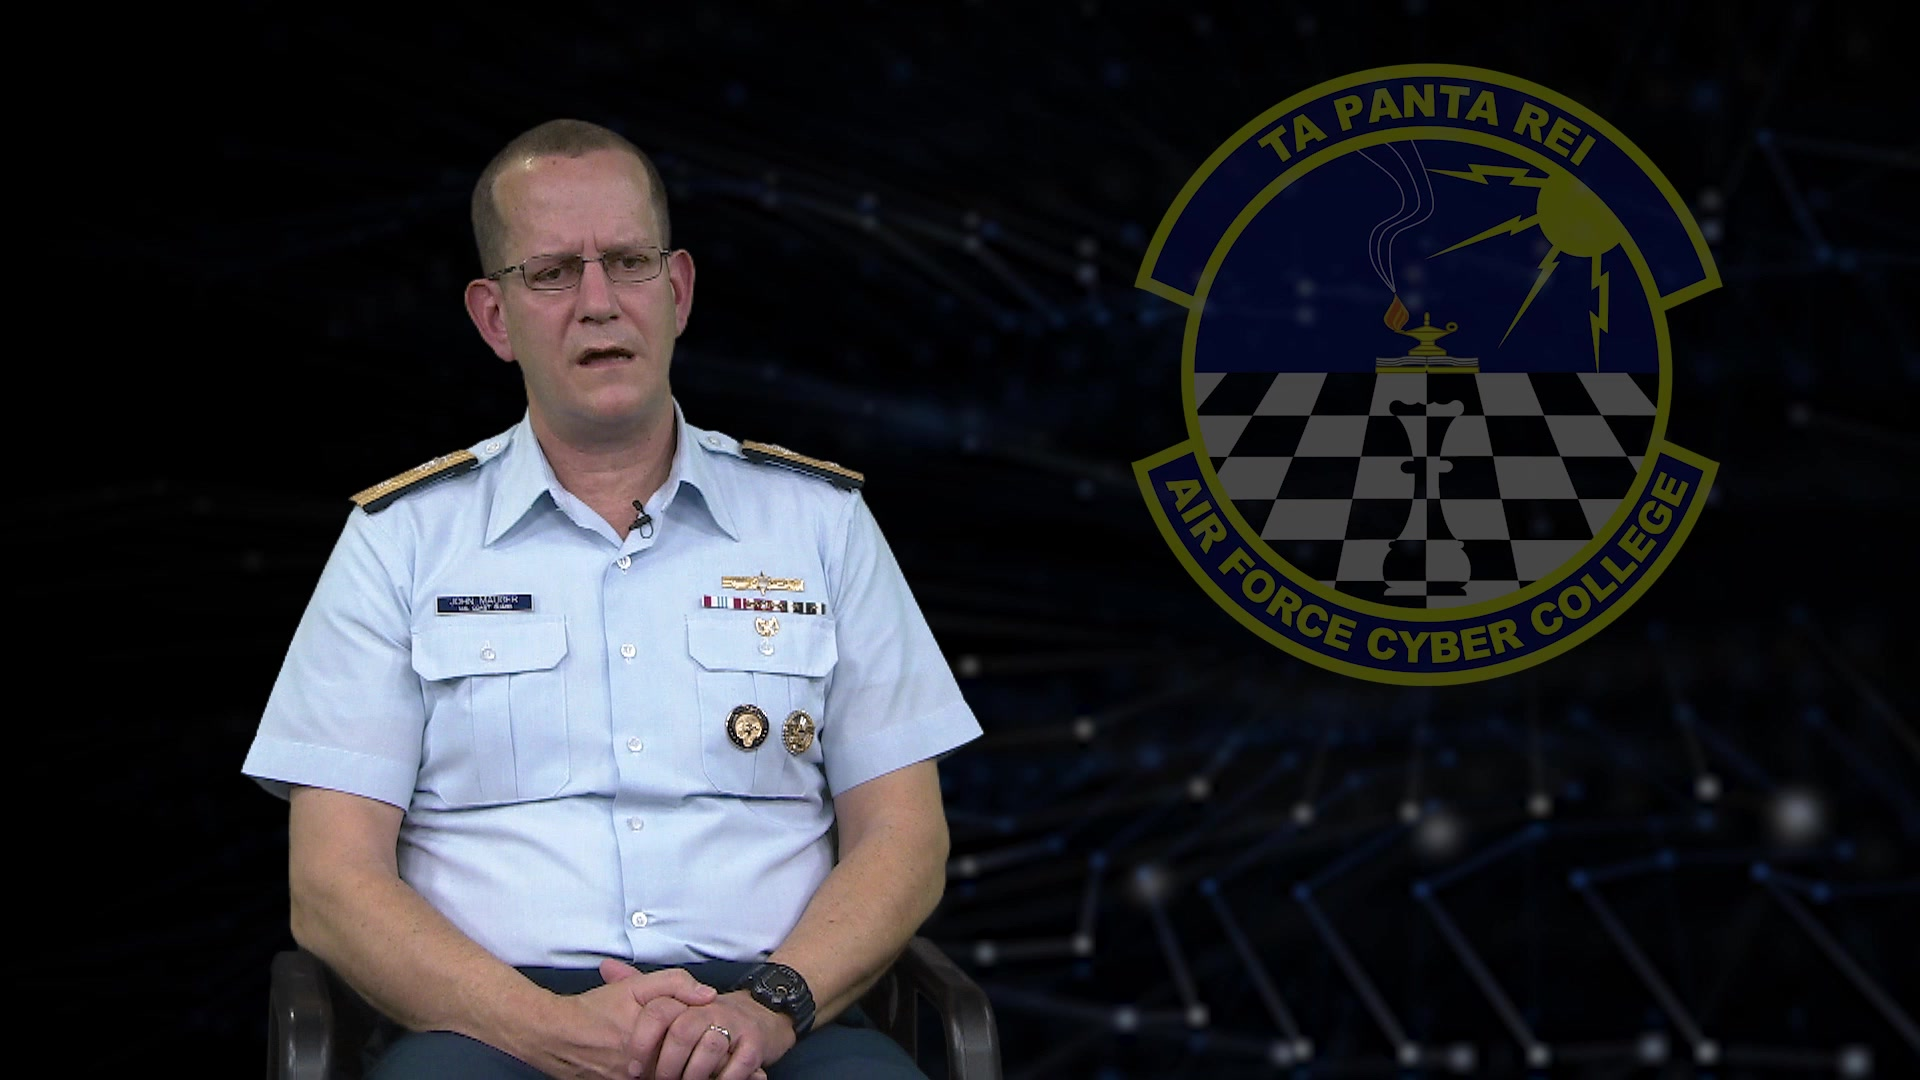 One-on-one interview with RDML John Mauger, US CYBERCOM led by Col Kevin Beeker, Air Force Cyber College discussing cyber training and the role of professional military education.